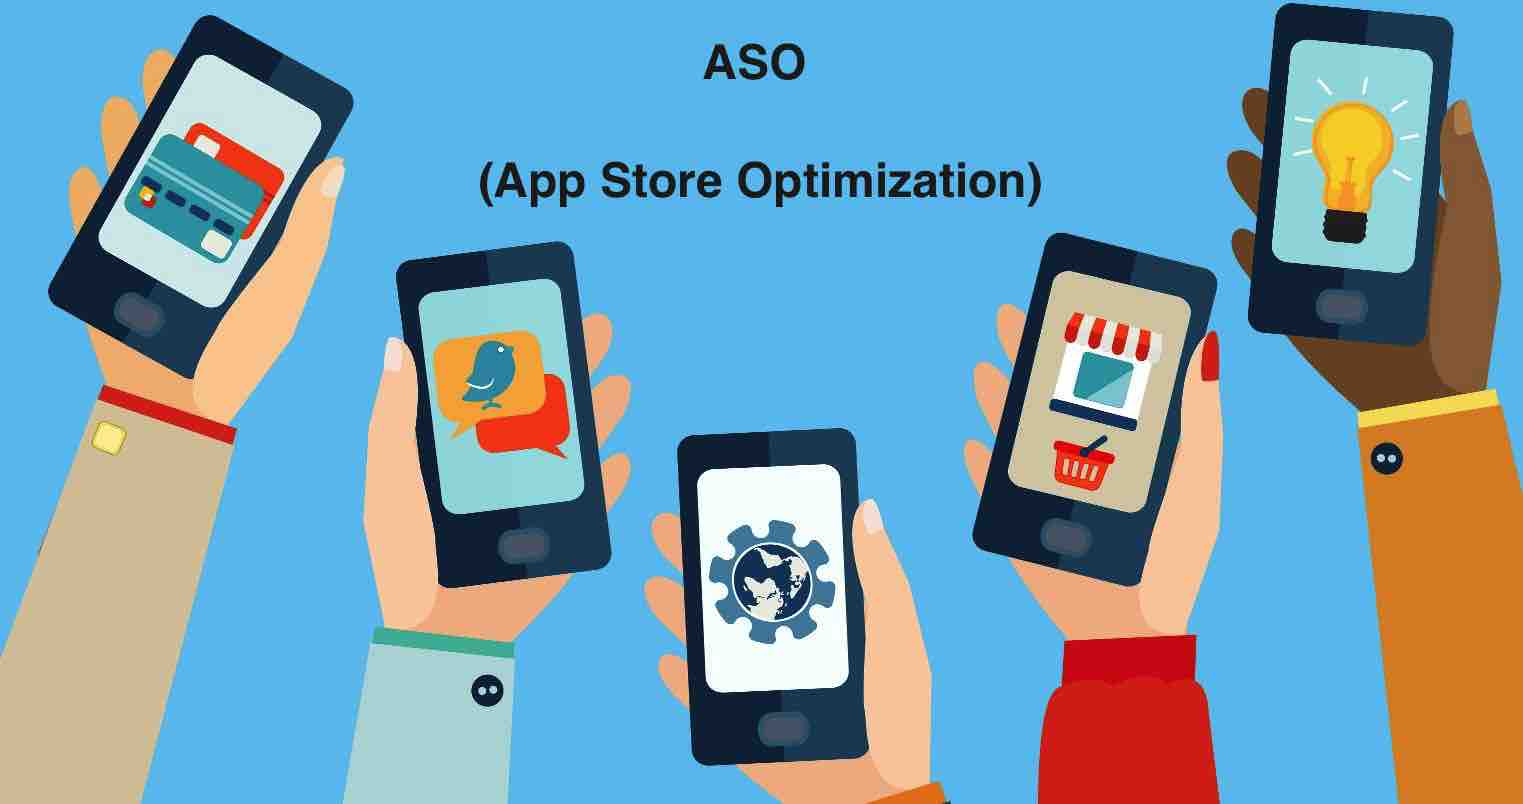 aso app store optimization services